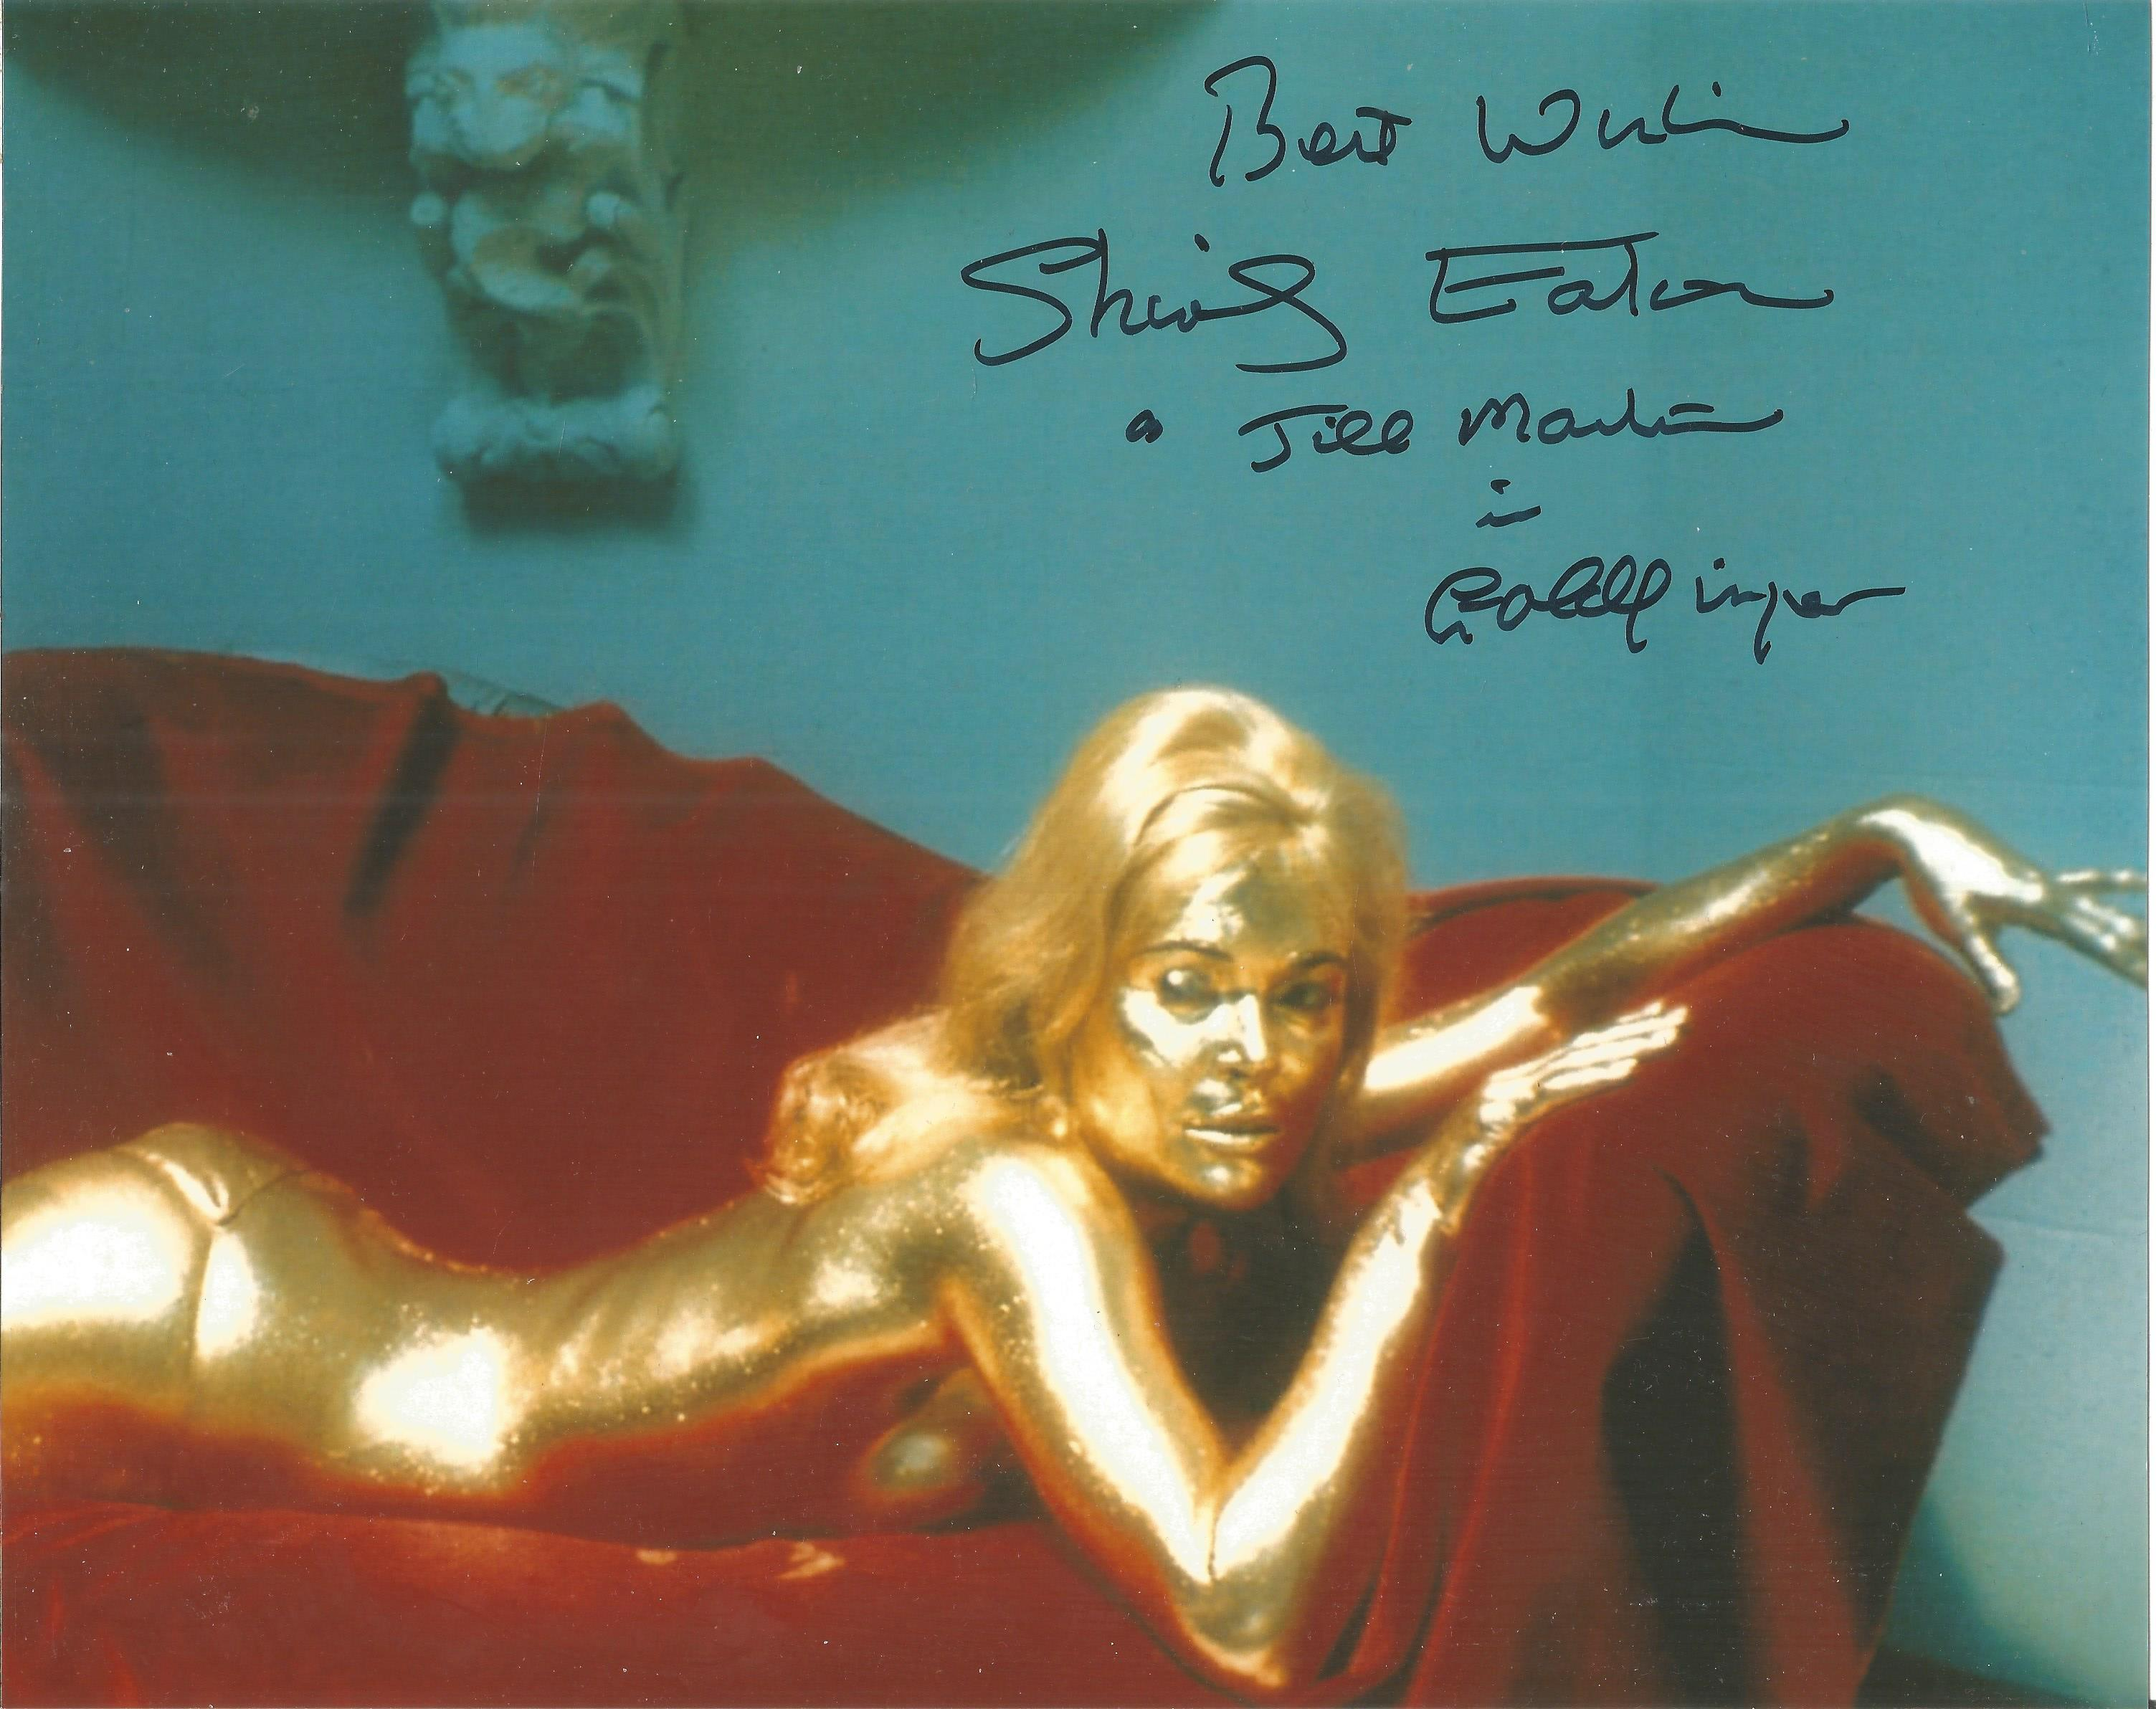 Shirley Eaton Goldfinger signed 10 x 8 inch colour photo on bed covered in gold, inscribed with